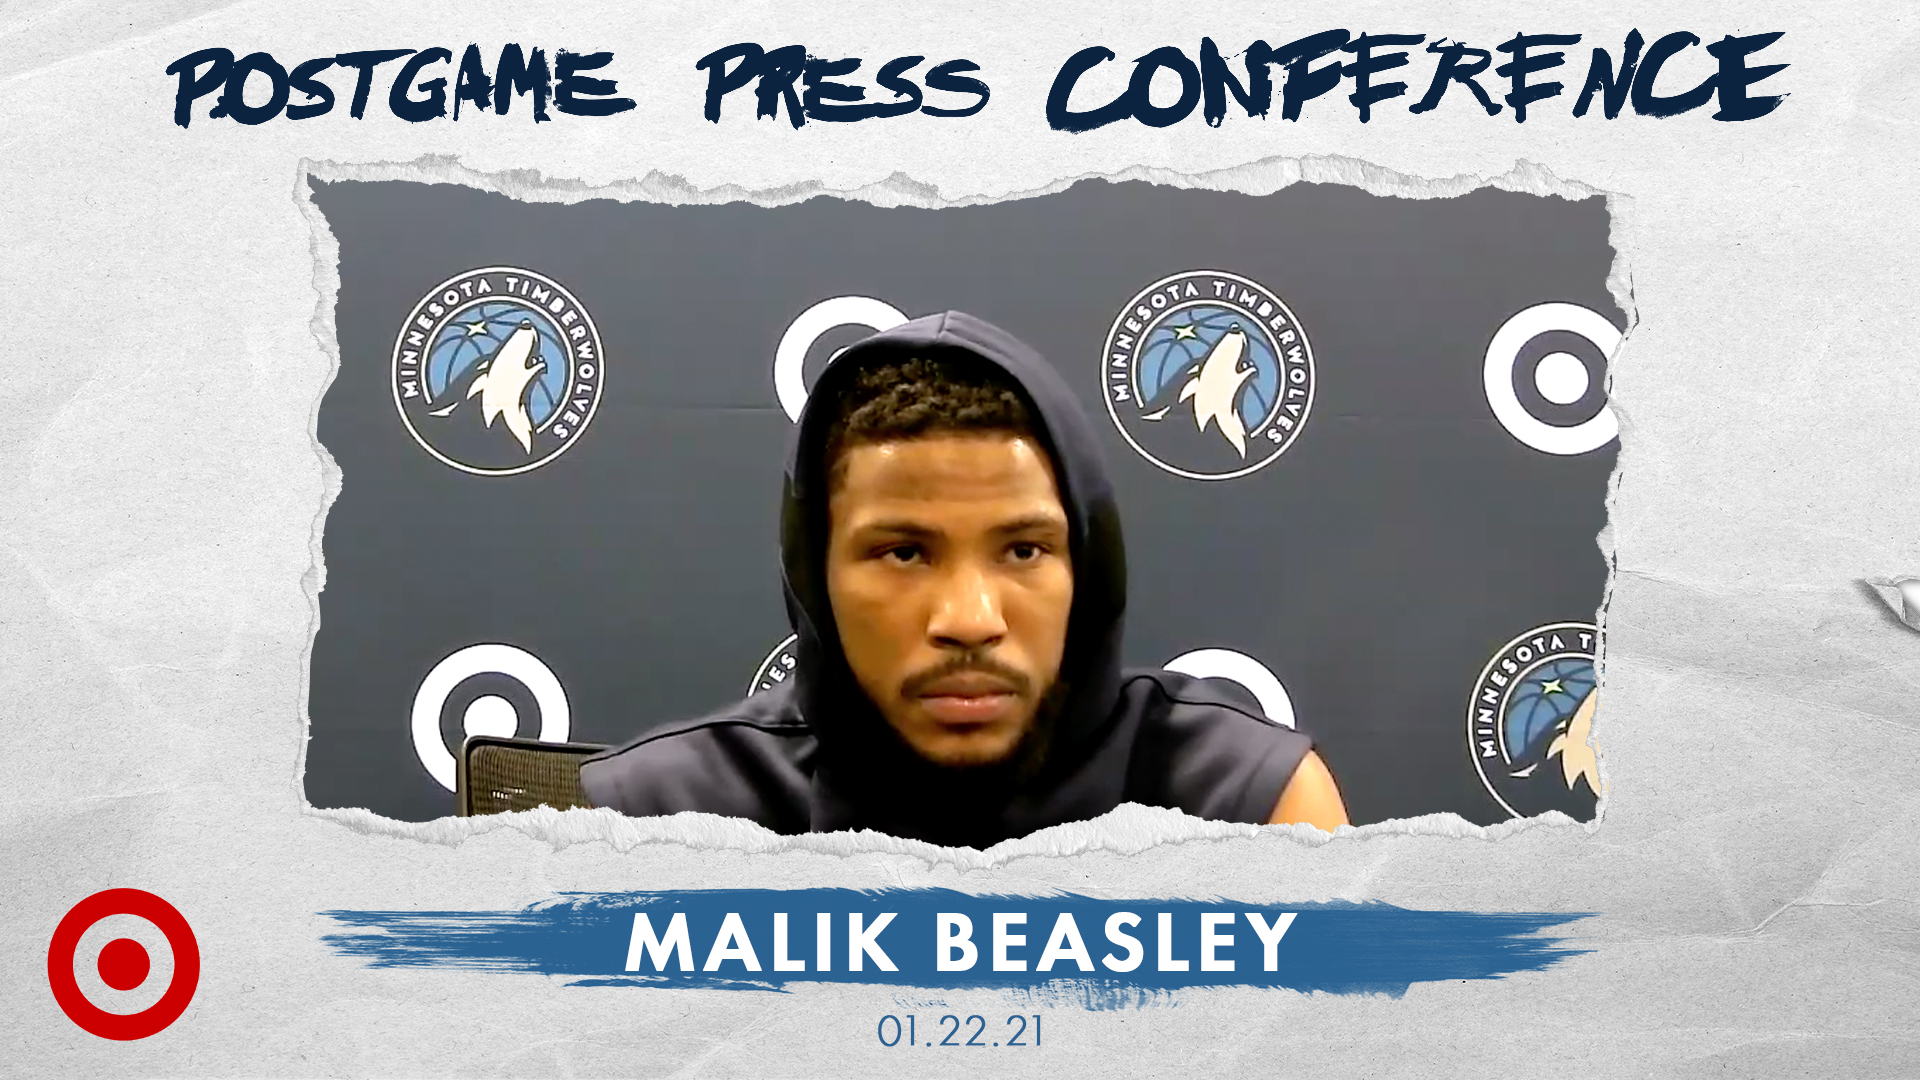 Malik Beasley Postgame Press Conference - January 22, 2021